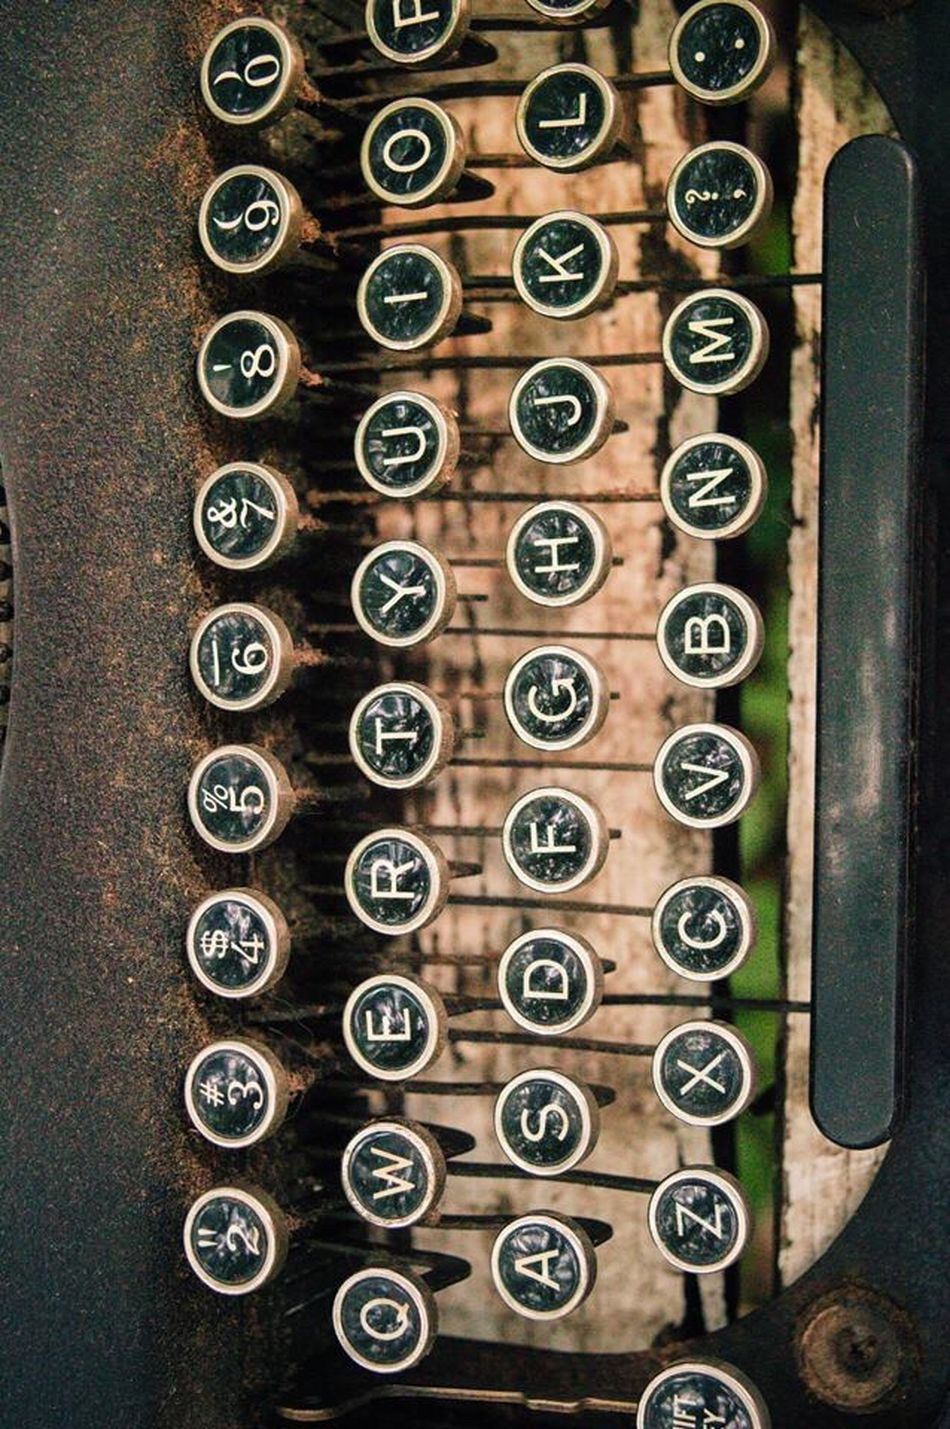 Antique Steampunk Typewriter